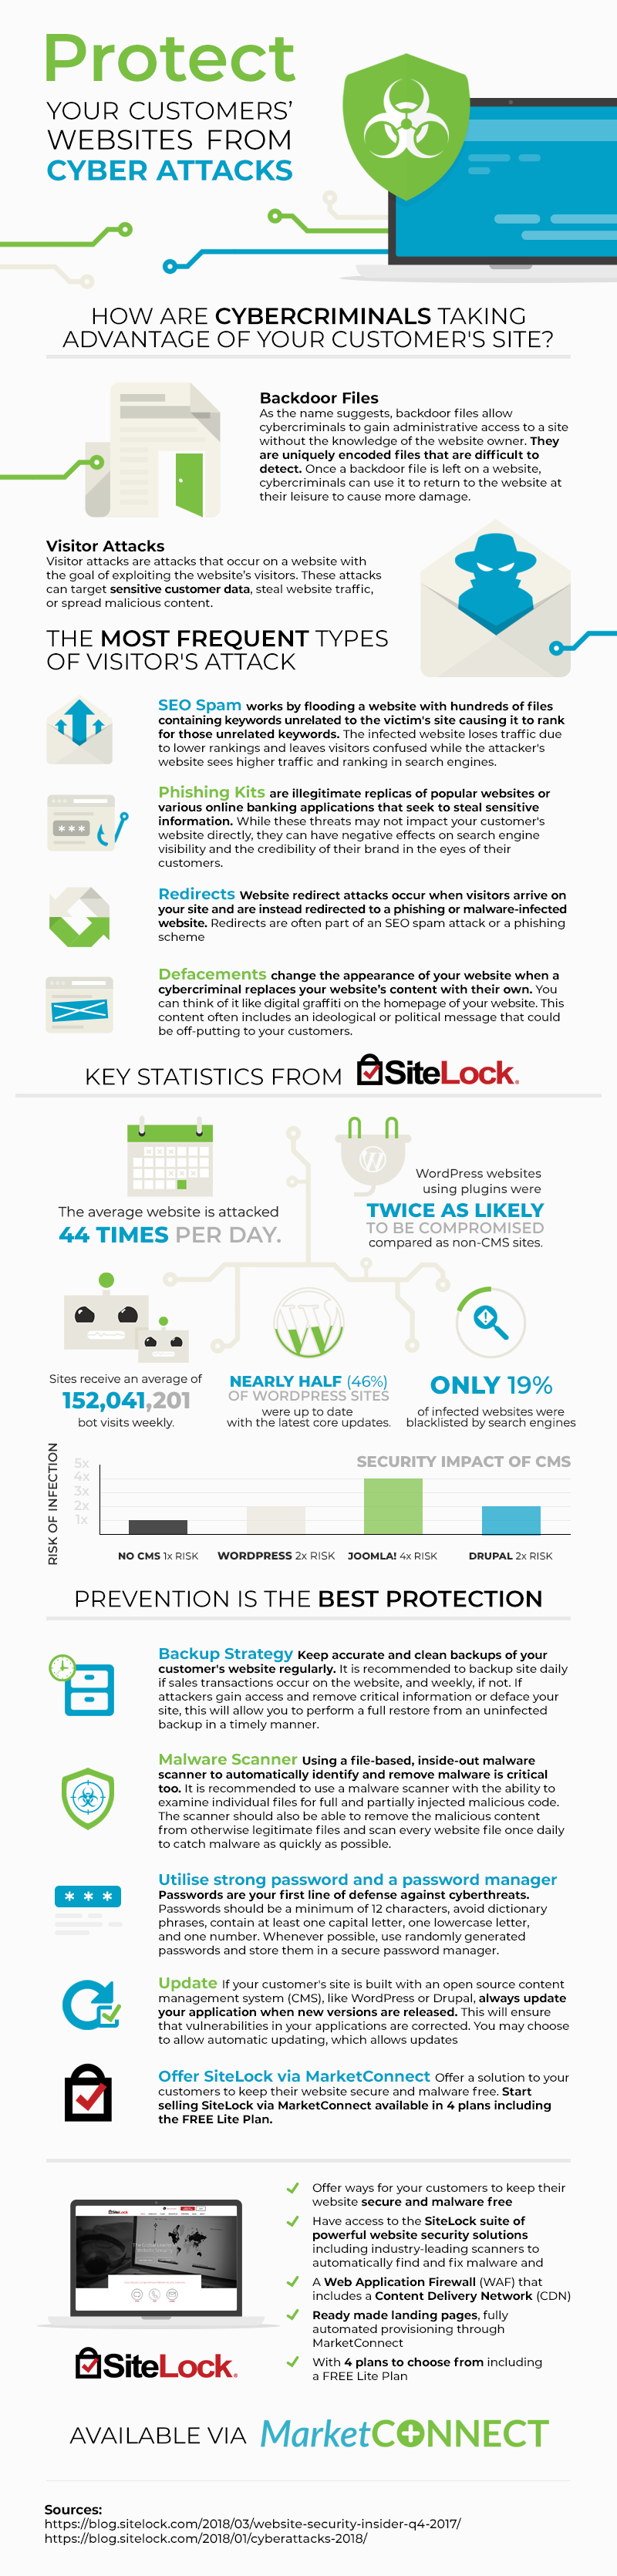 whmcs-marketconnect-sitelock-infographic.png